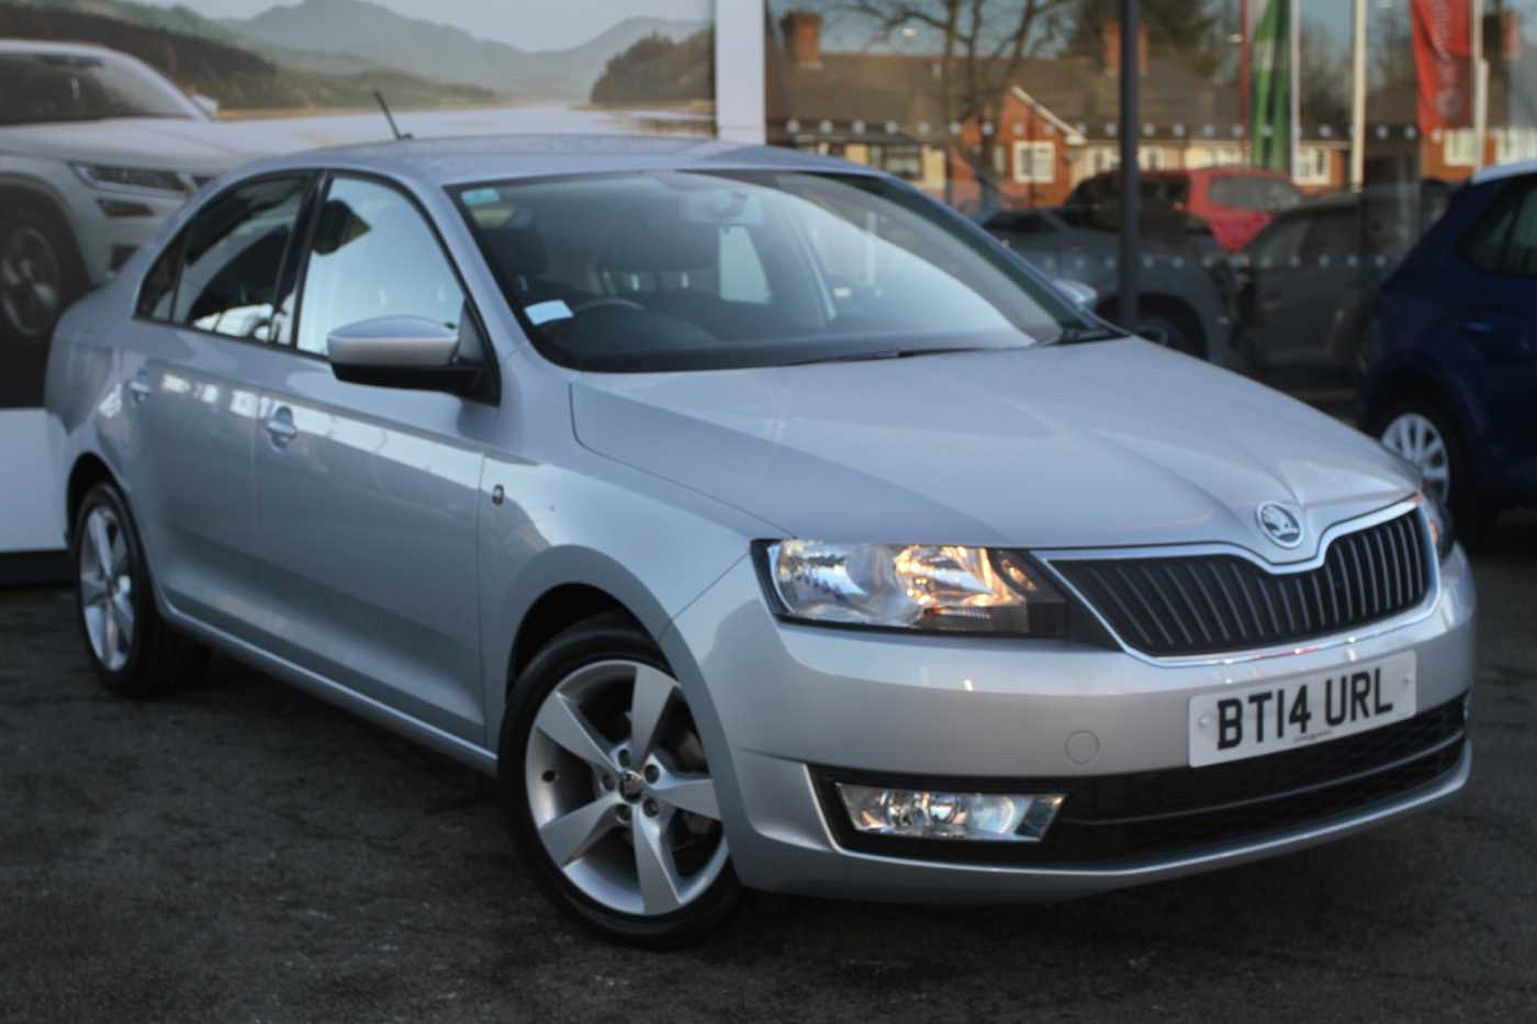 SKODA Rapid 1.2 TSI (86 PS) SE Connect Hatchback 5-Dr